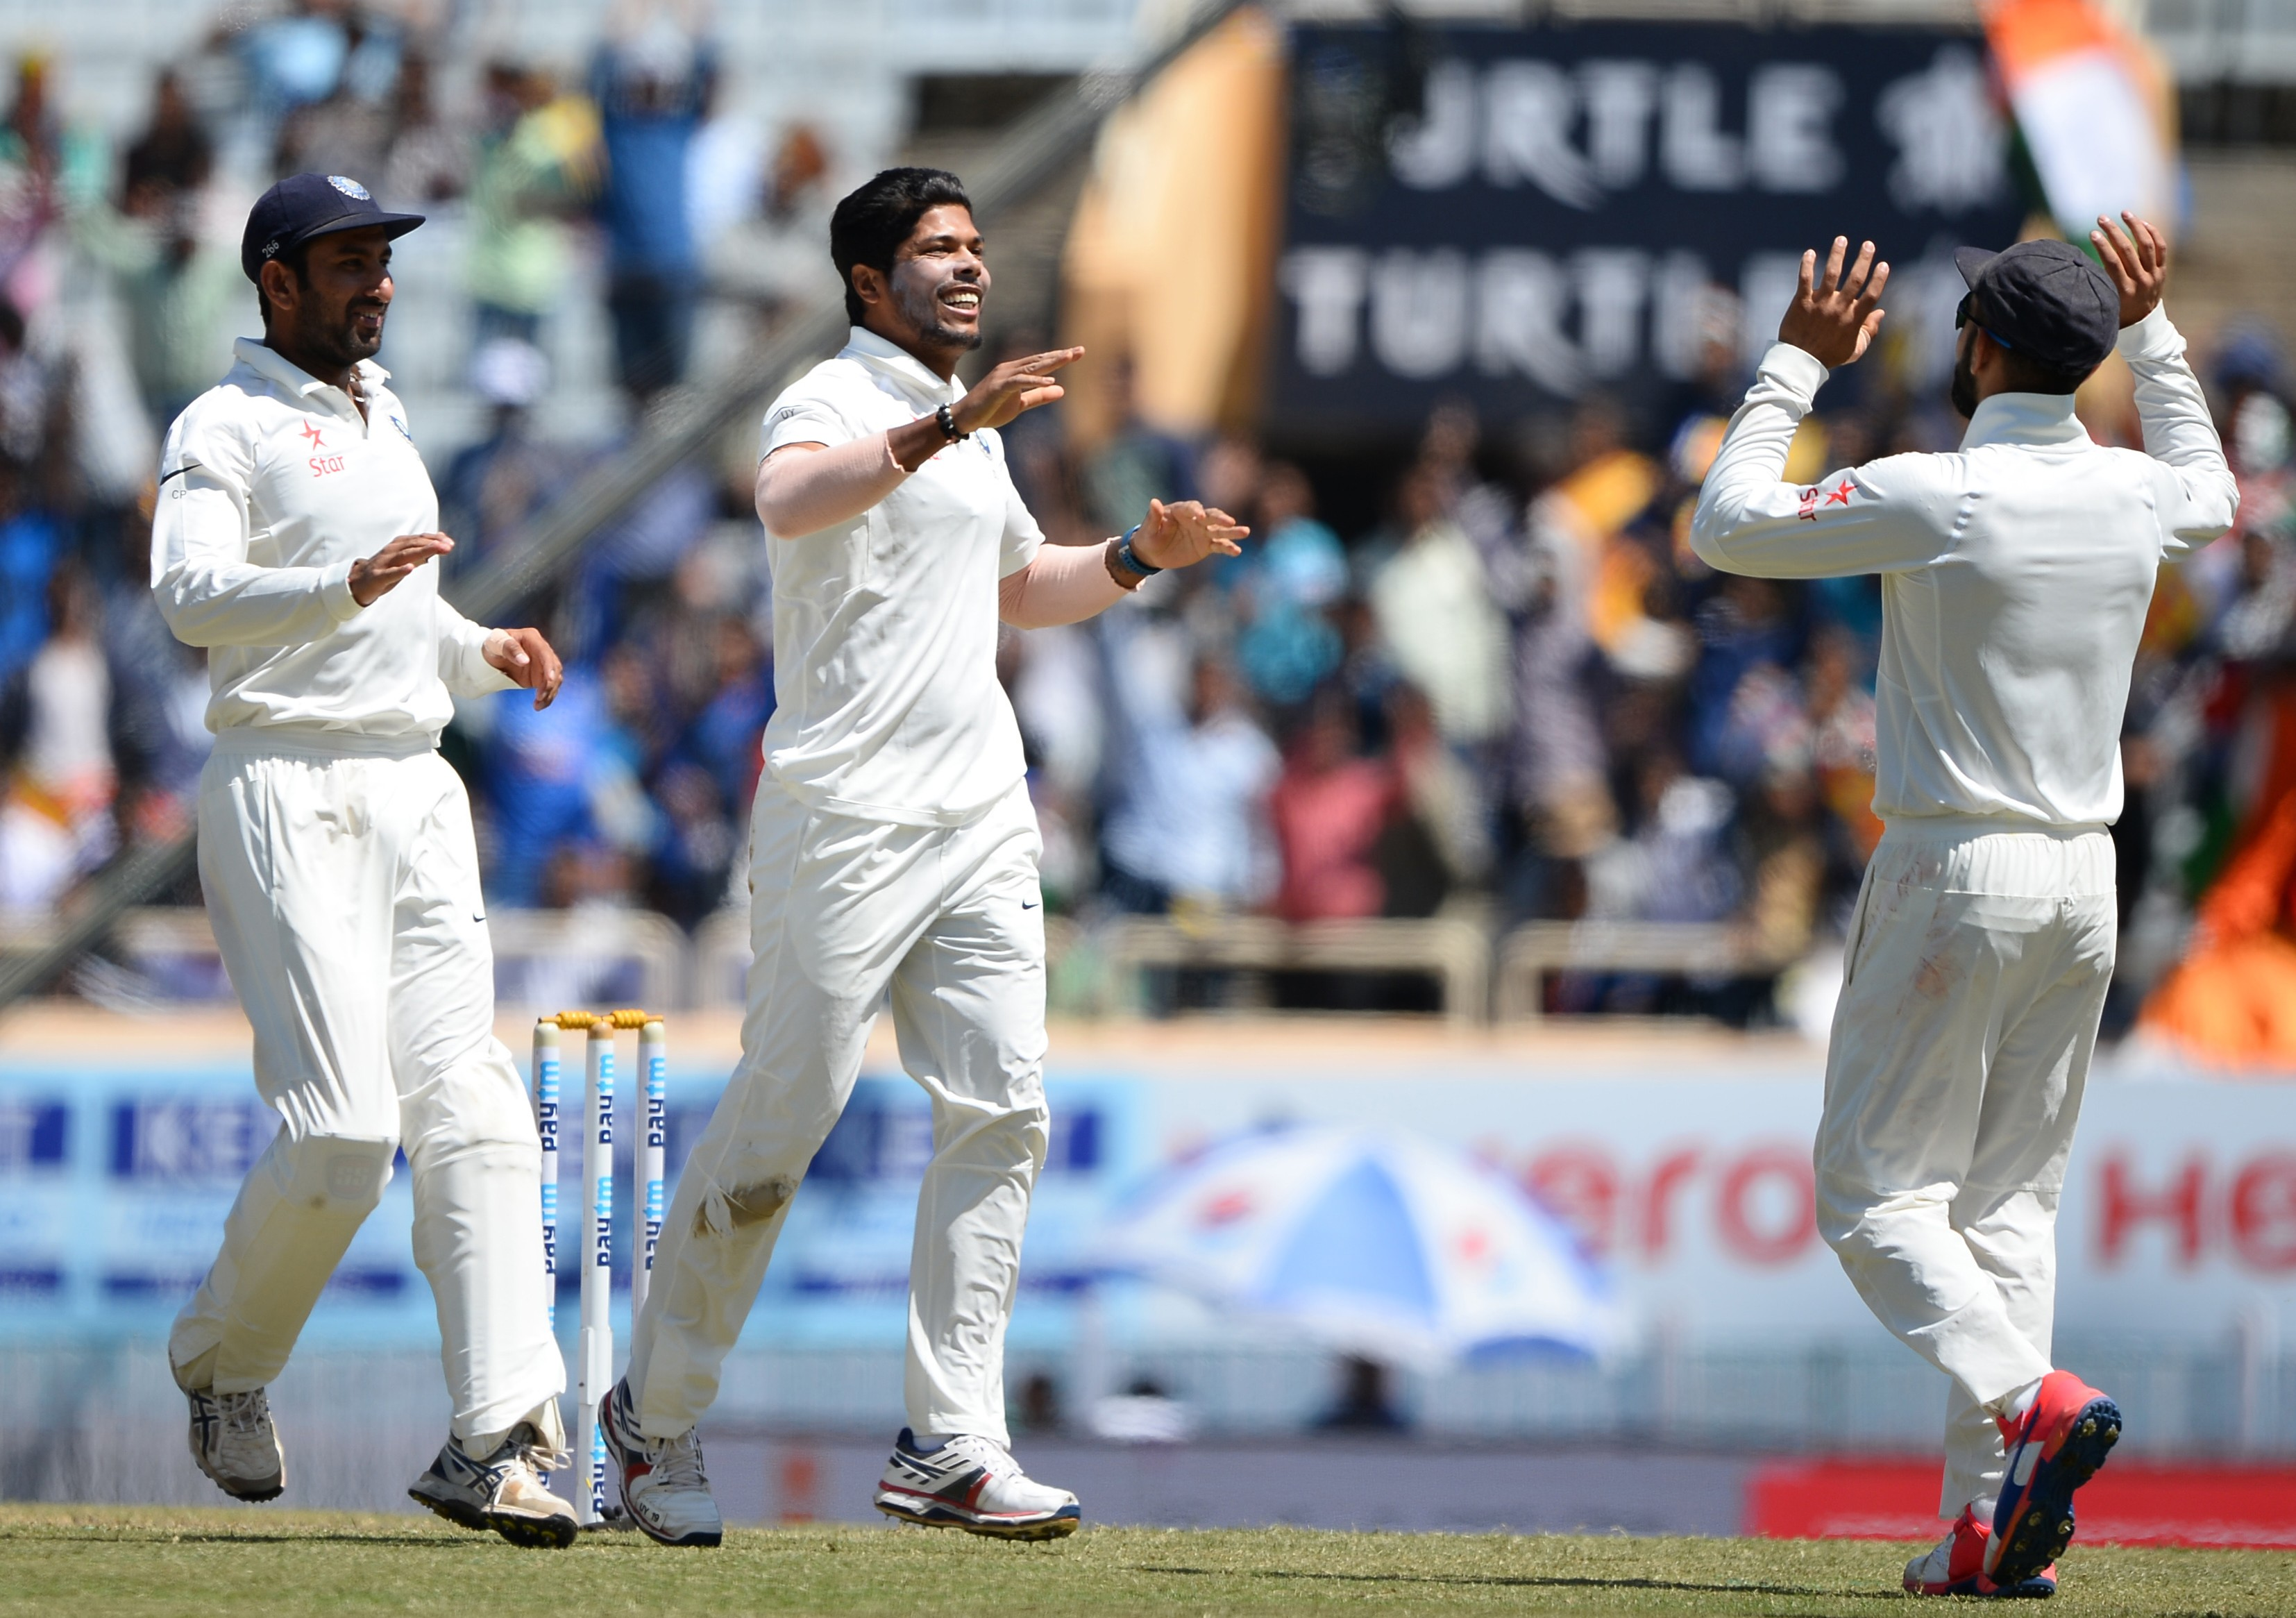 Dharamsala Test: India need 87 more runs to win series against Aussies